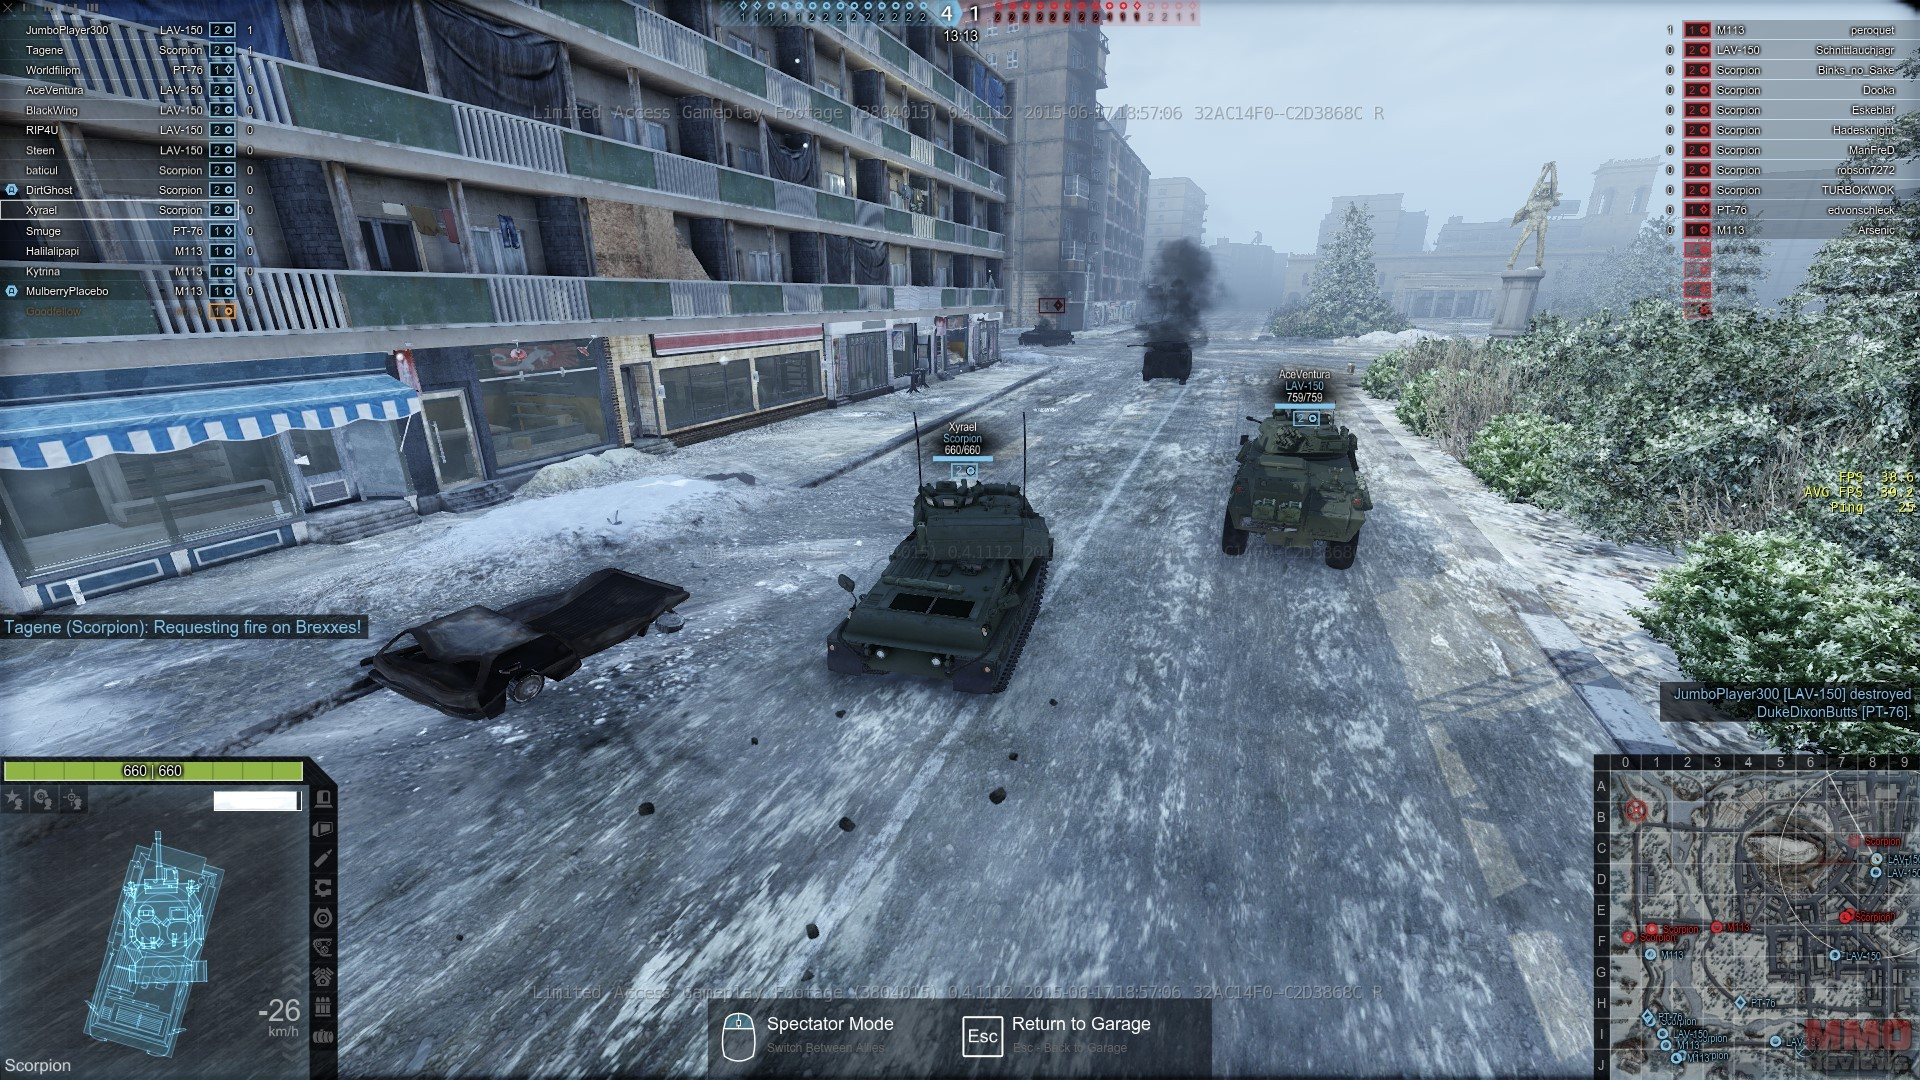 Imagenes de Armored Warfare